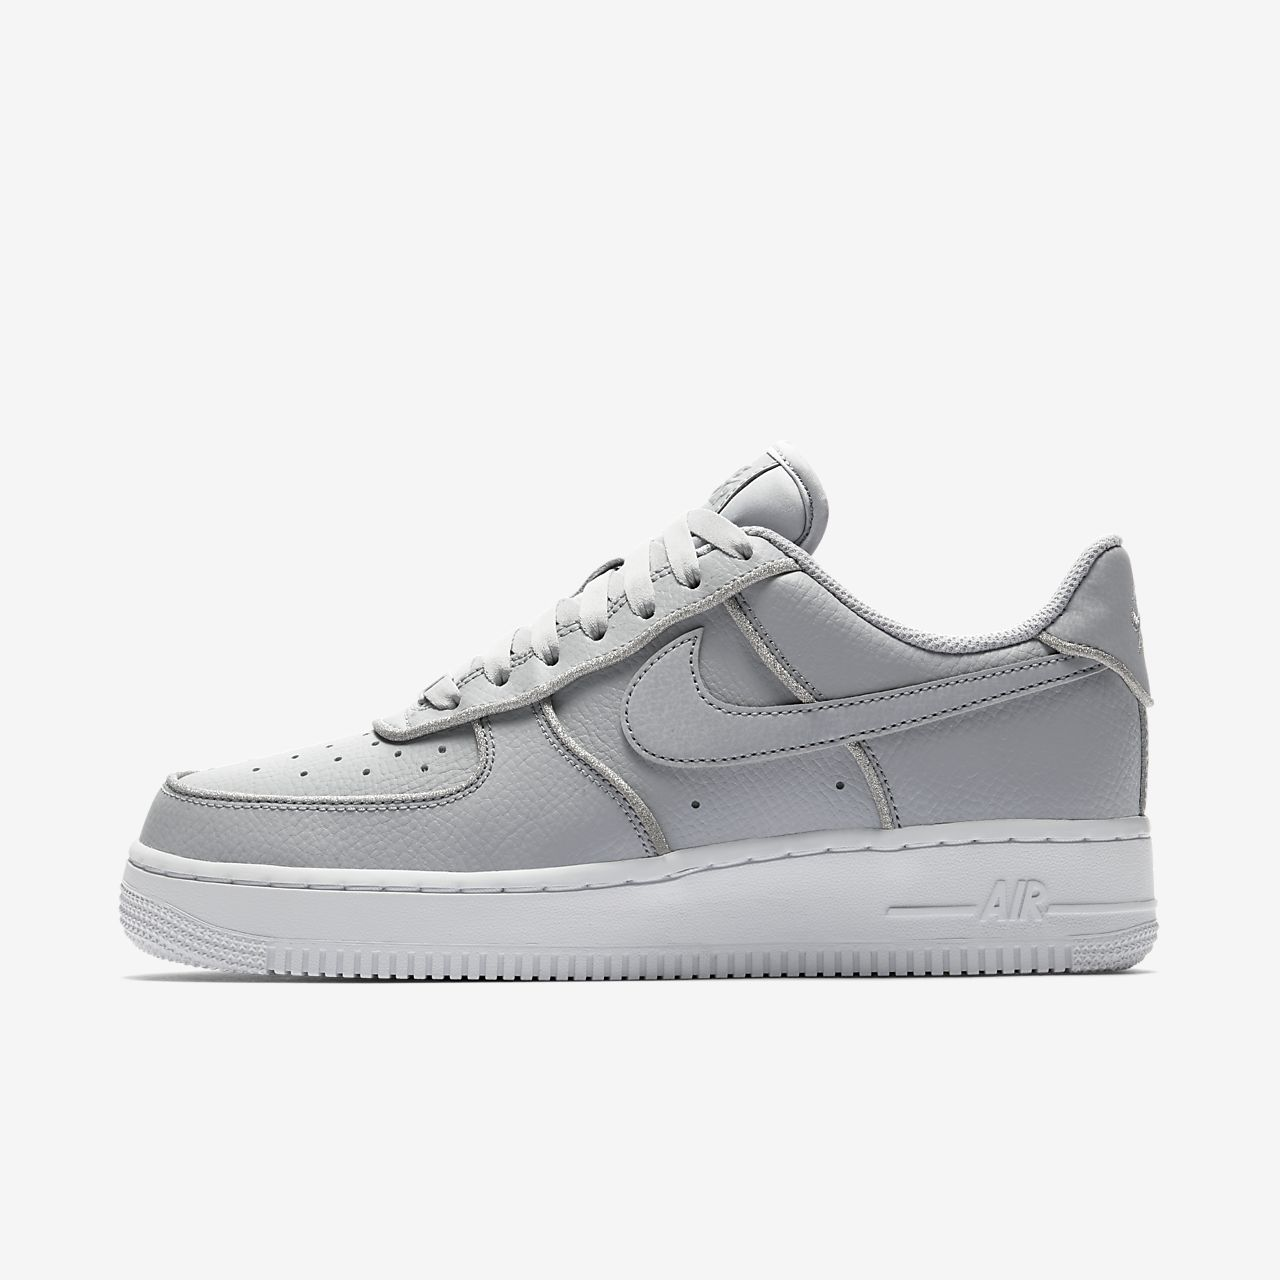 reputable site 681b6 bb382 Nike Air Force 1 Low Glitter